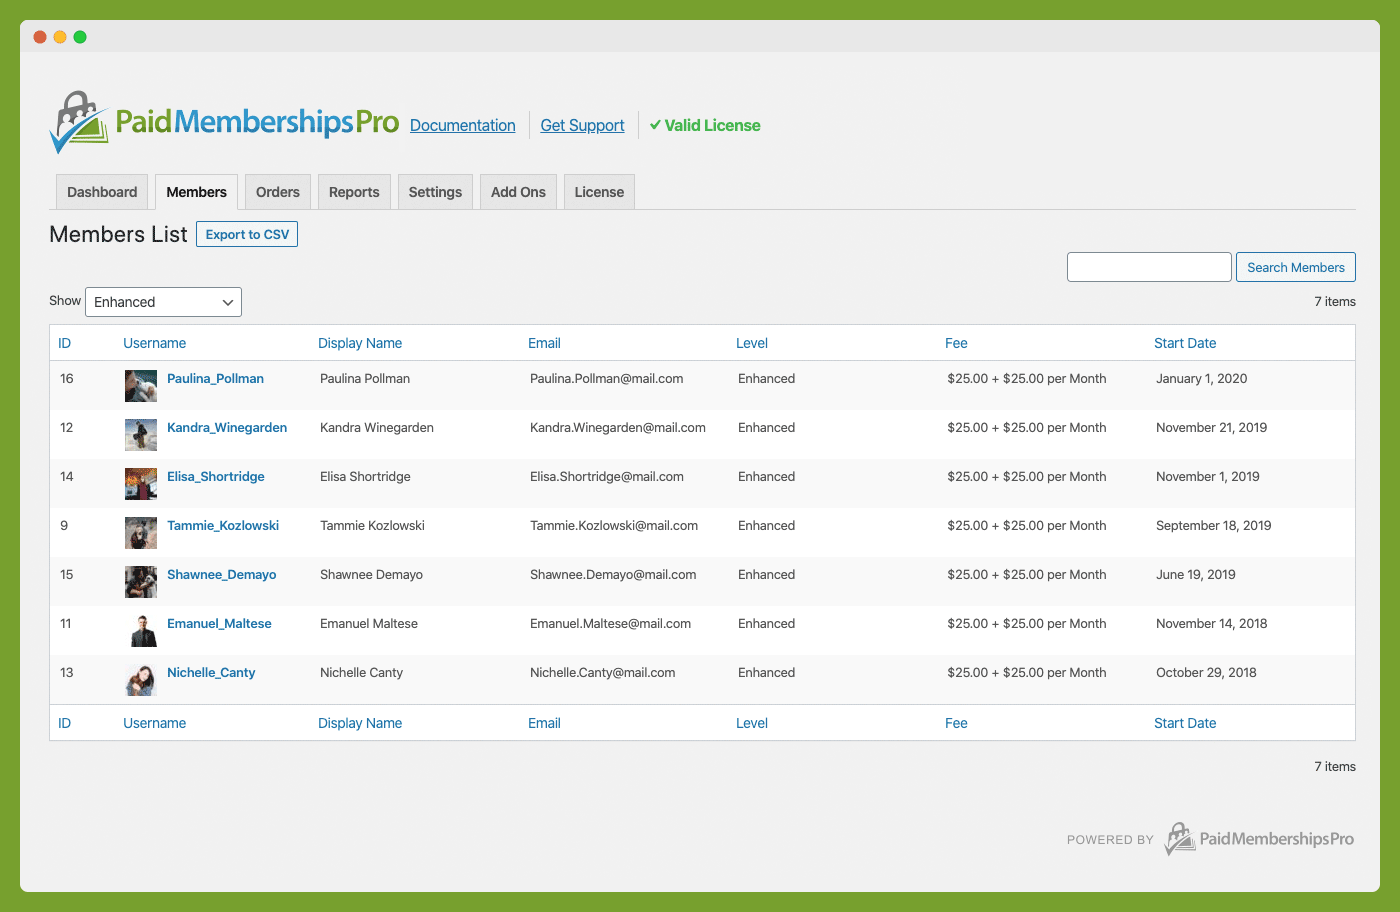 Members are WordPress Users. PMPro provides a unique interface to view a single member's history, filter and search all Members or export your Members List.